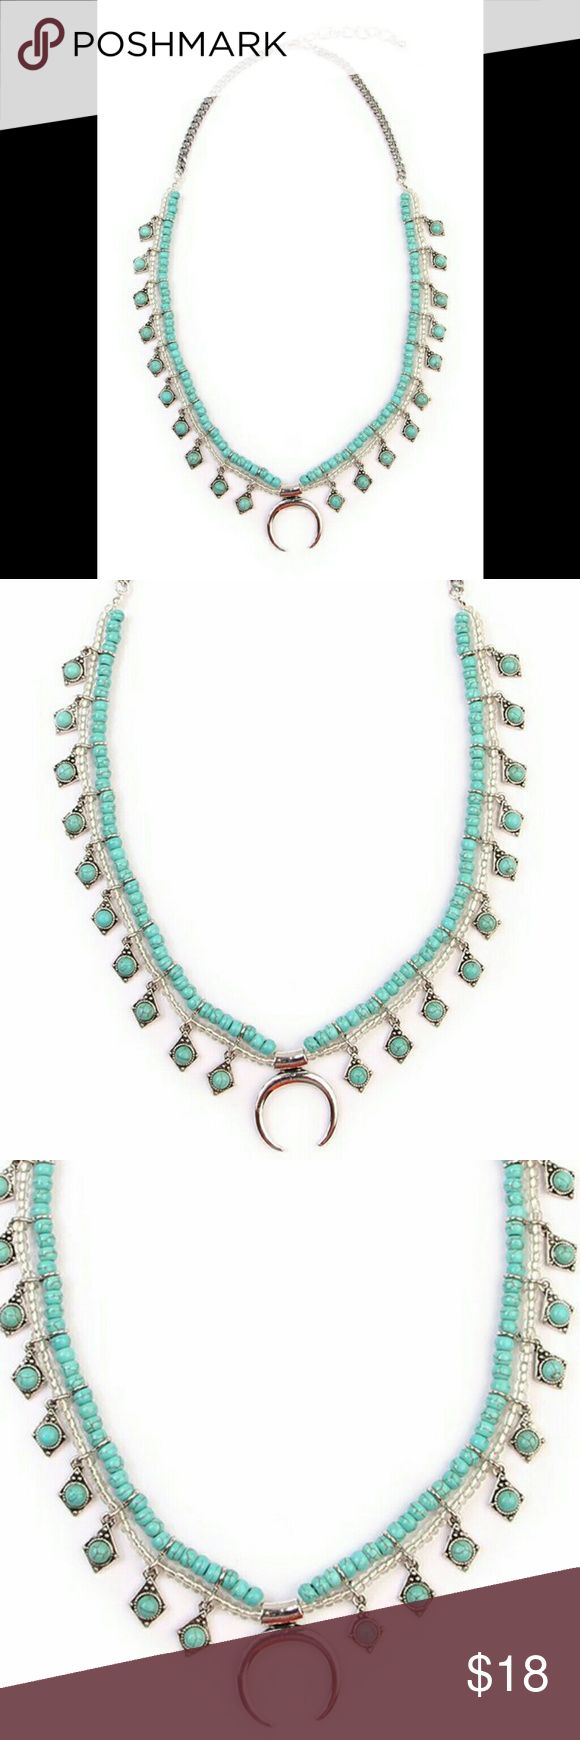 """TURQUOISE SQUASH BLOSSOM NECKLACE Vintage inspired squash blossom necklace is the perfect accessory for all your boho chic outfits. Look like a rock star in this silver tone statement necklace! Material:?Base Metal, Turquoise Stones, CC Beads Closure:?Lobster Clasp ?Measurement:??3"""" Extender, 20"""" Length, Decor 1.5"""" L x 1.1""""W *??Limit exposure to water, perfume or body cream Jewelry Necklaces"""